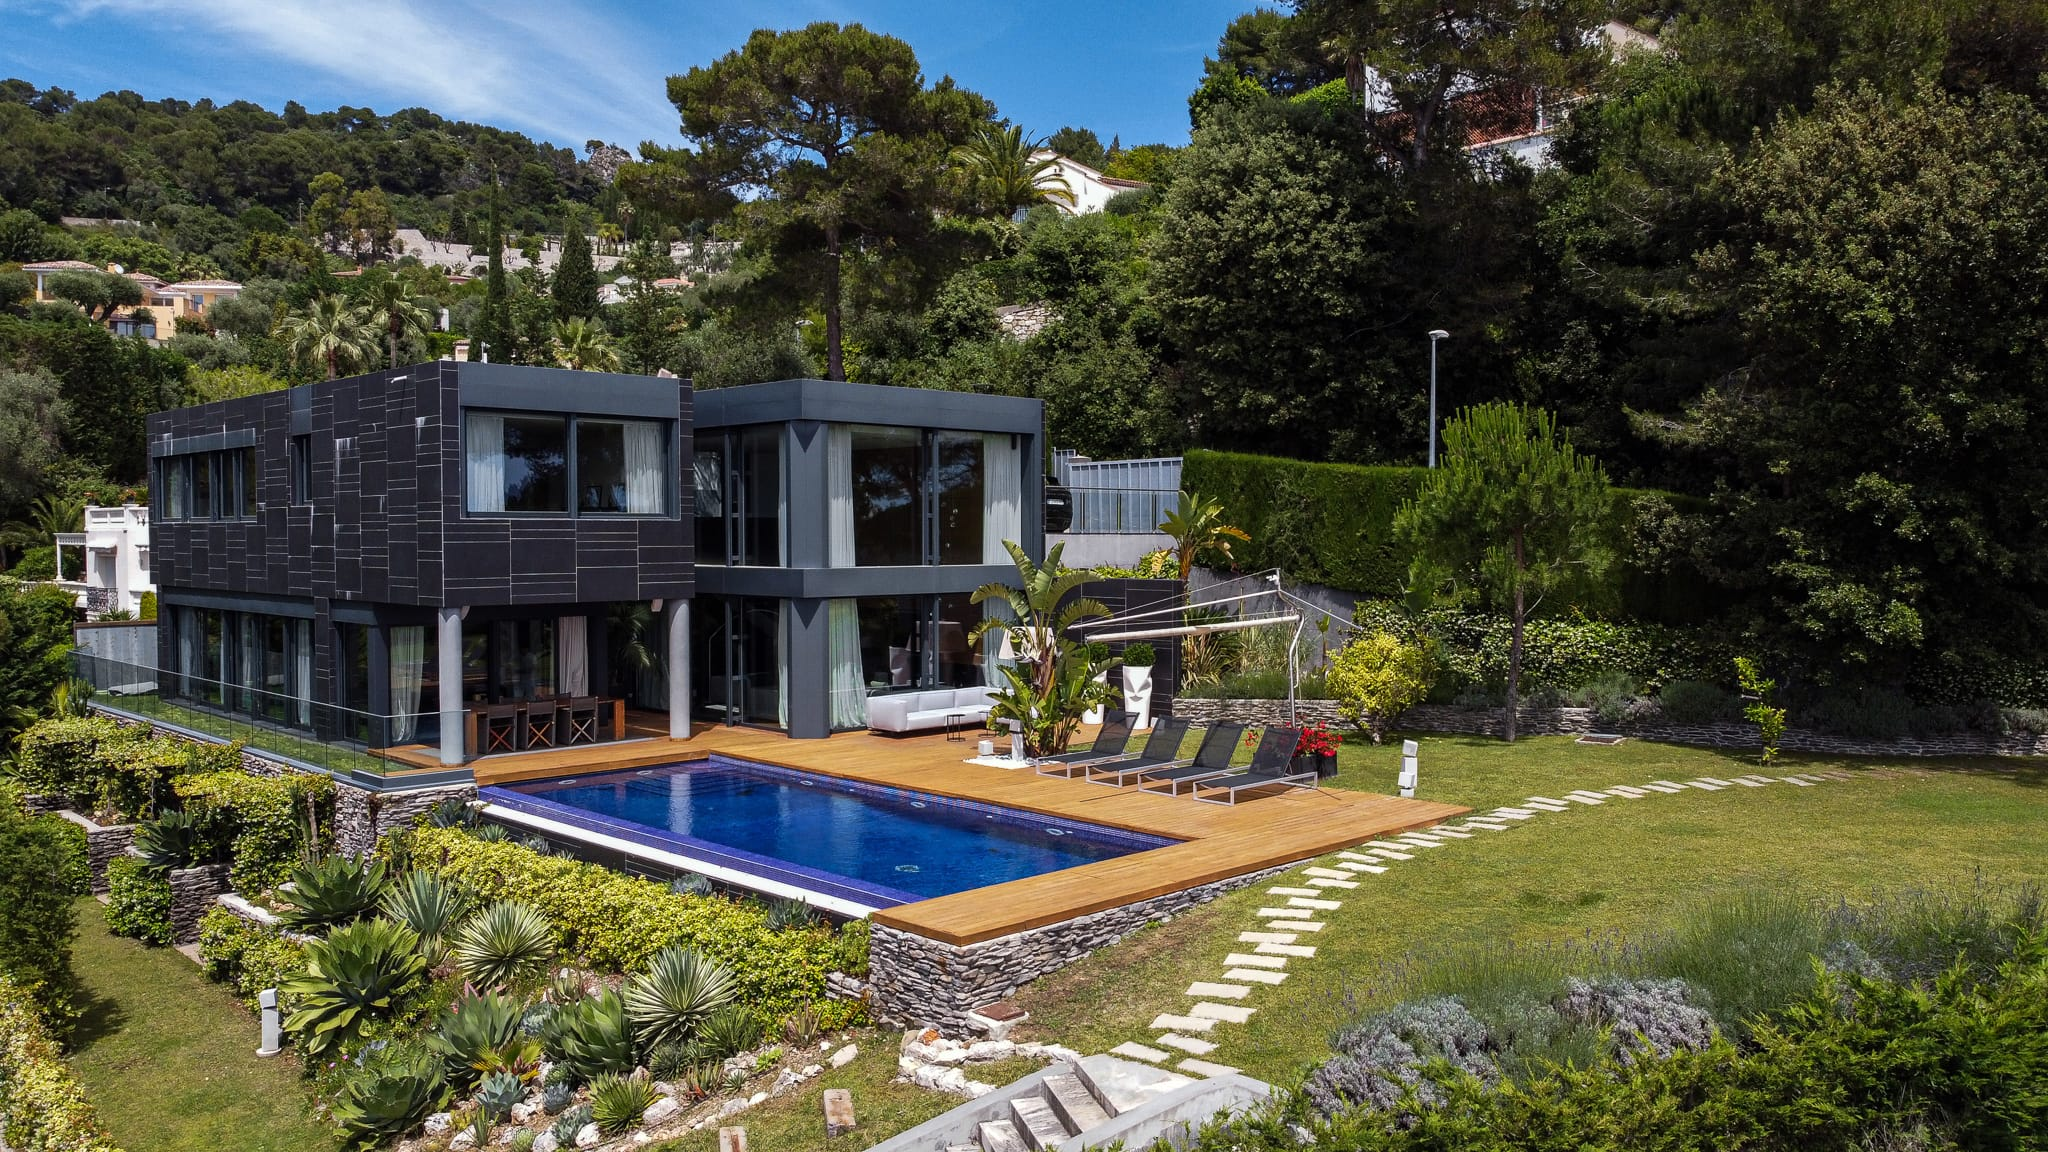 Real Estate - Professional photographer on the Côte d'Azur